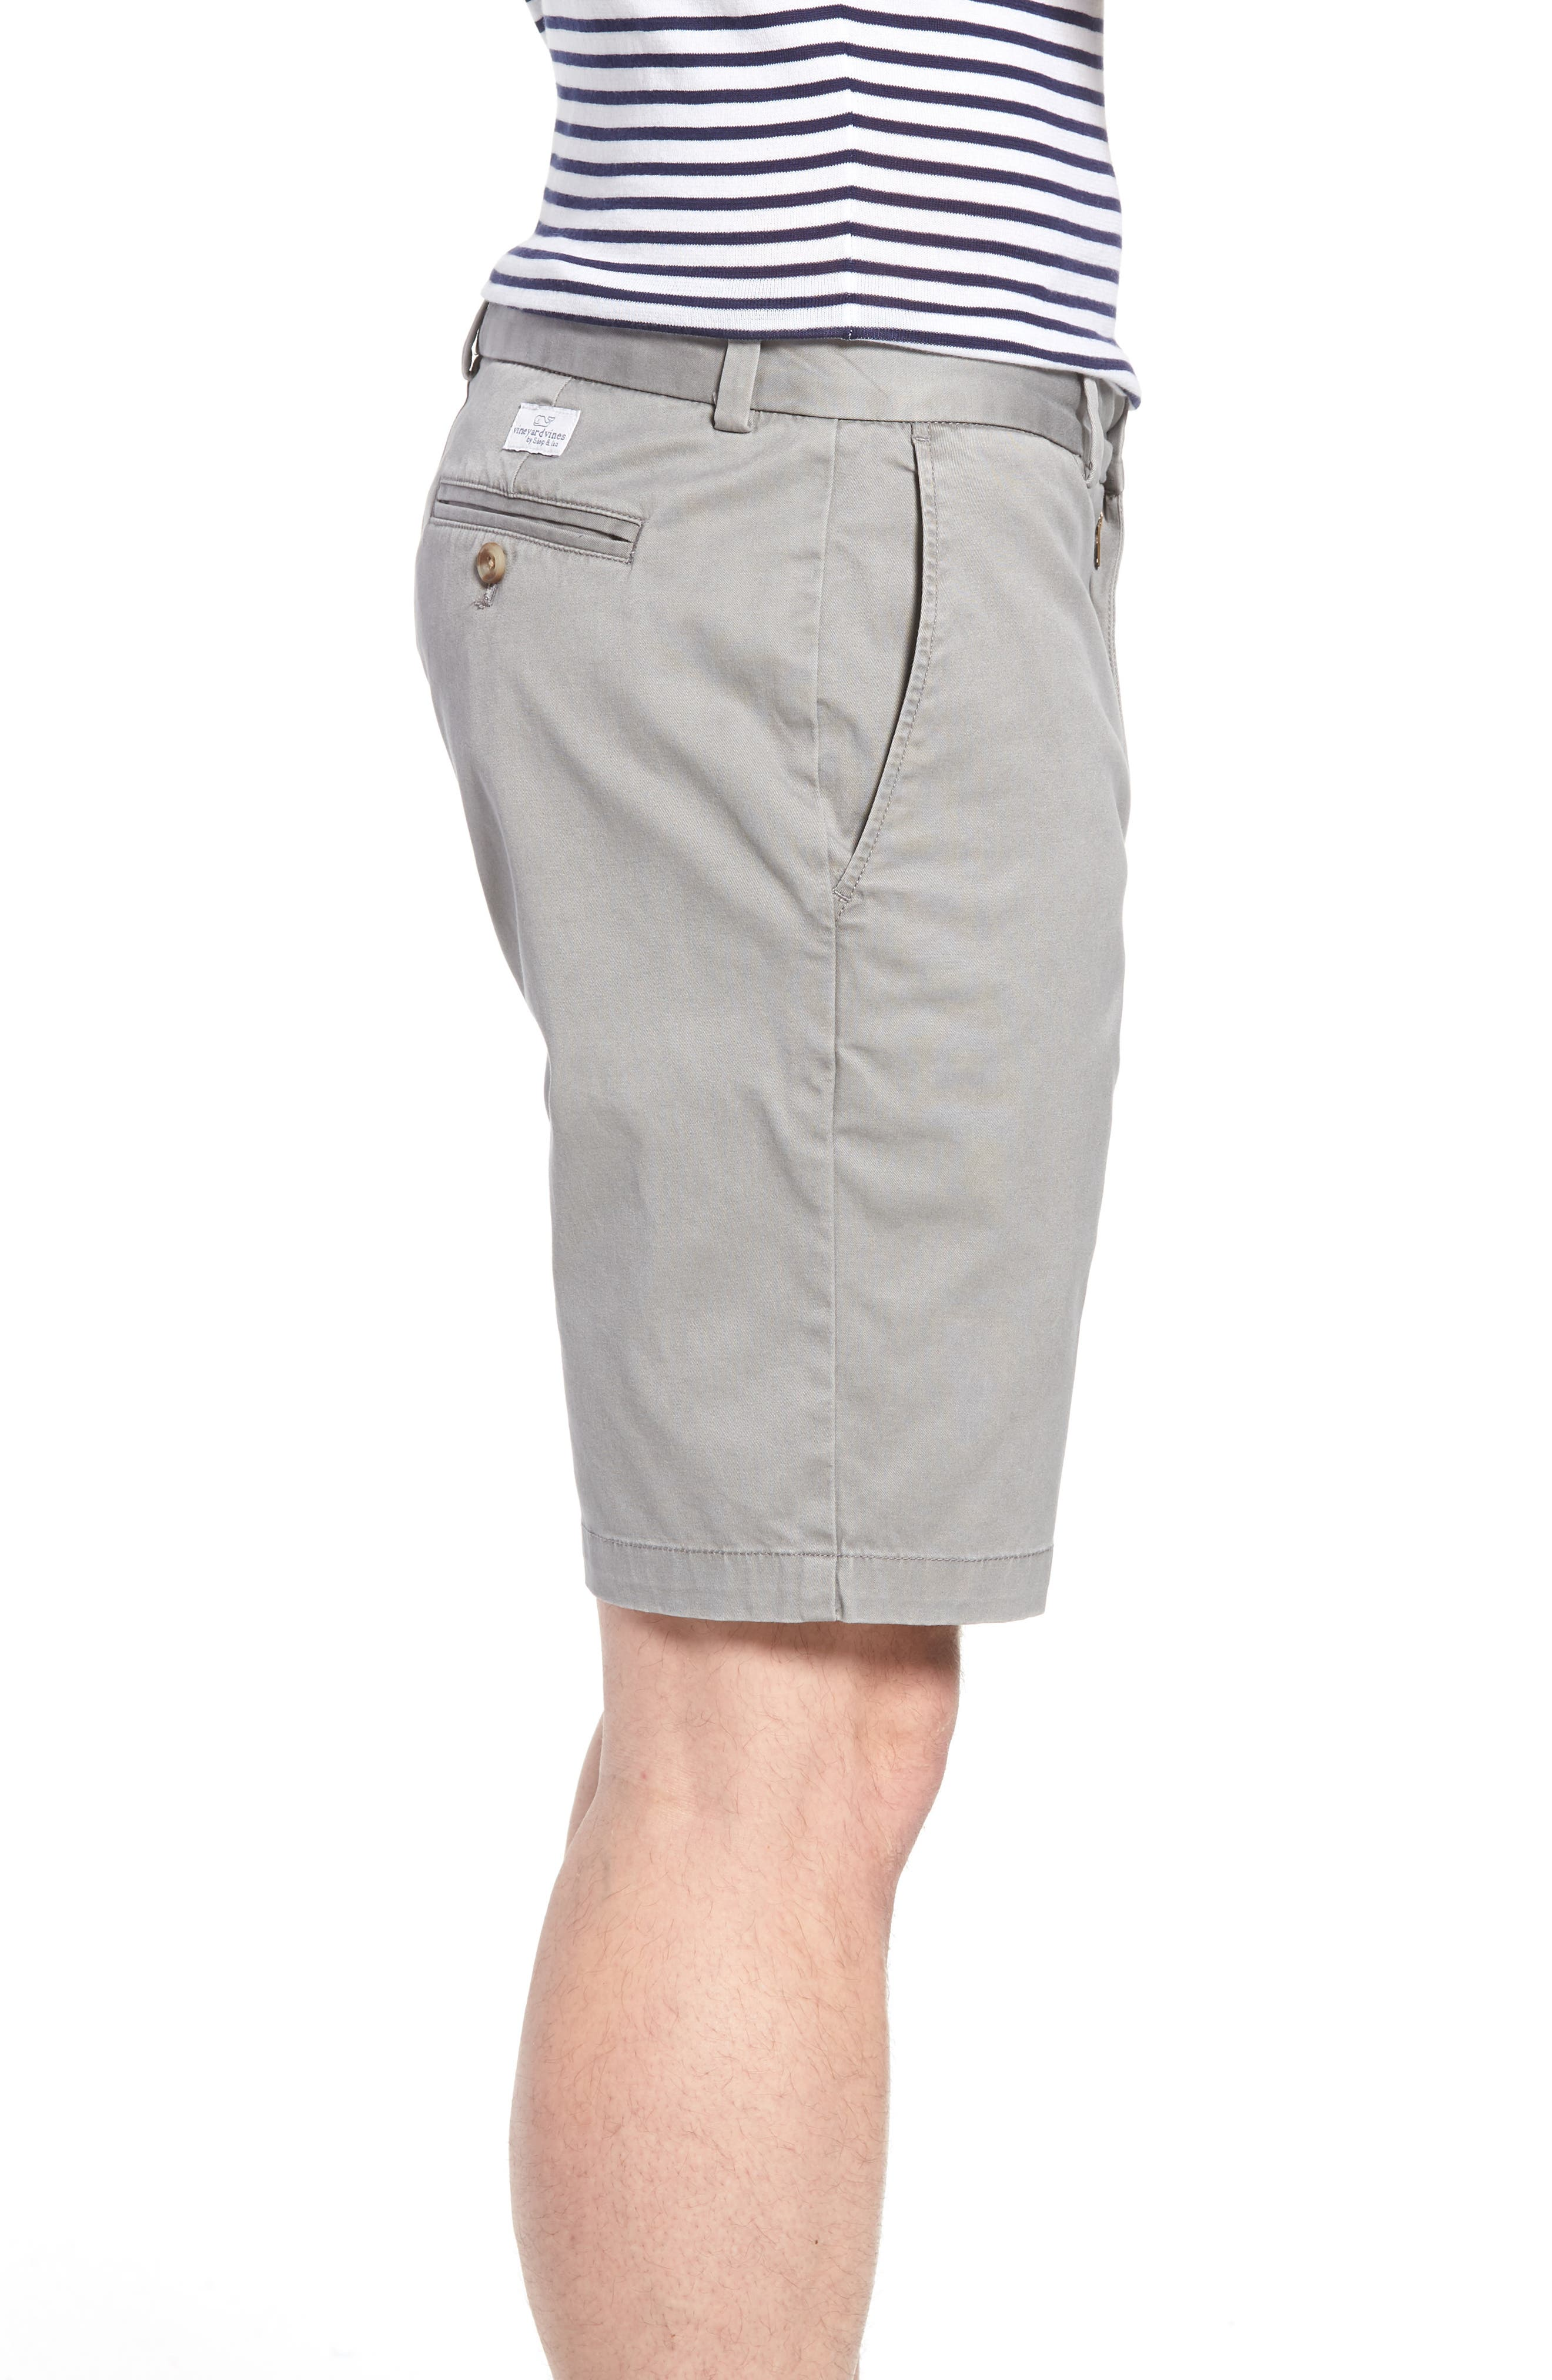 VINEYARD VINES, 9 Inch Stretch Breaker Shorts, Alternate thumbnail 3, color, ANCHOR GREY